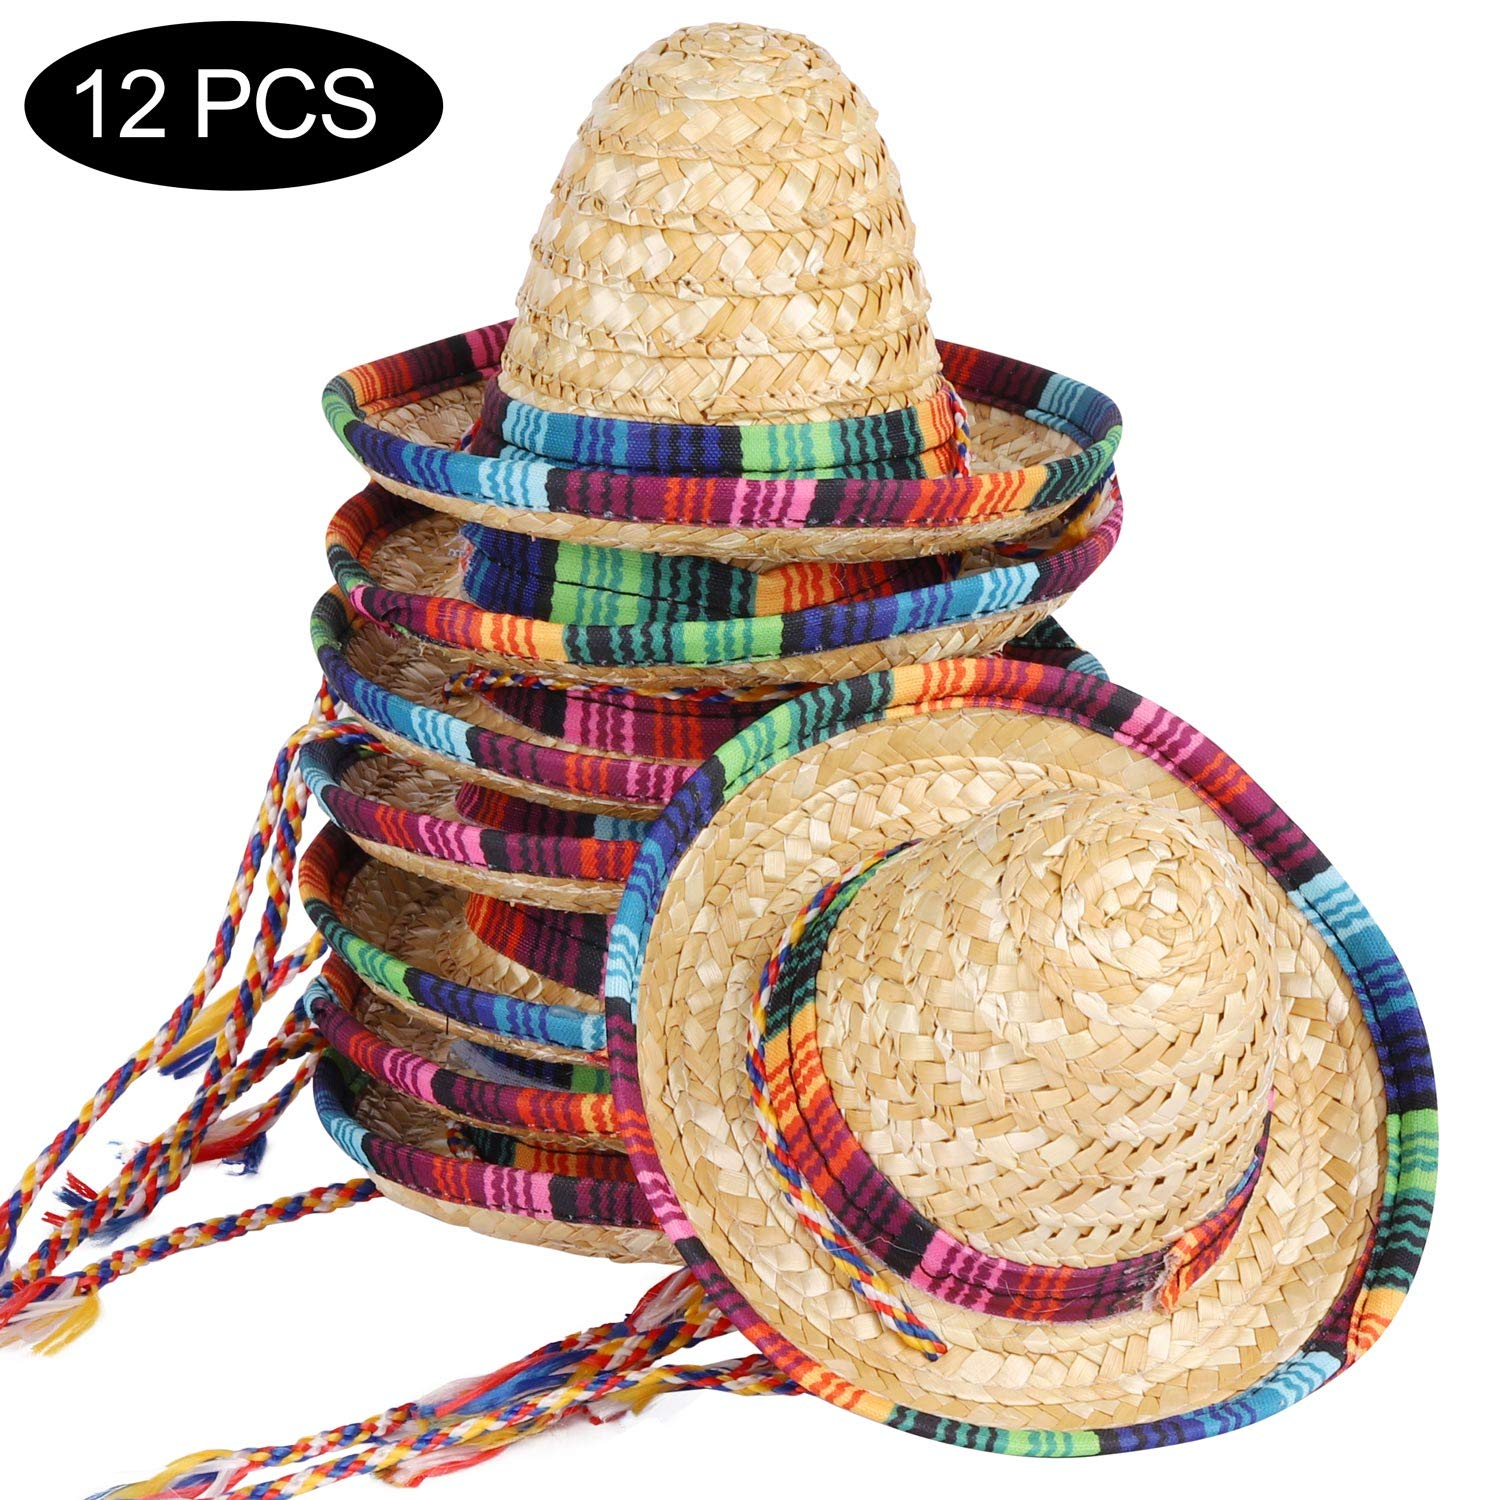 12 Pack Mini Mexican hat, Natural Straw Mini Sombrero Fiesta for Fiesta Hat Party Supplies